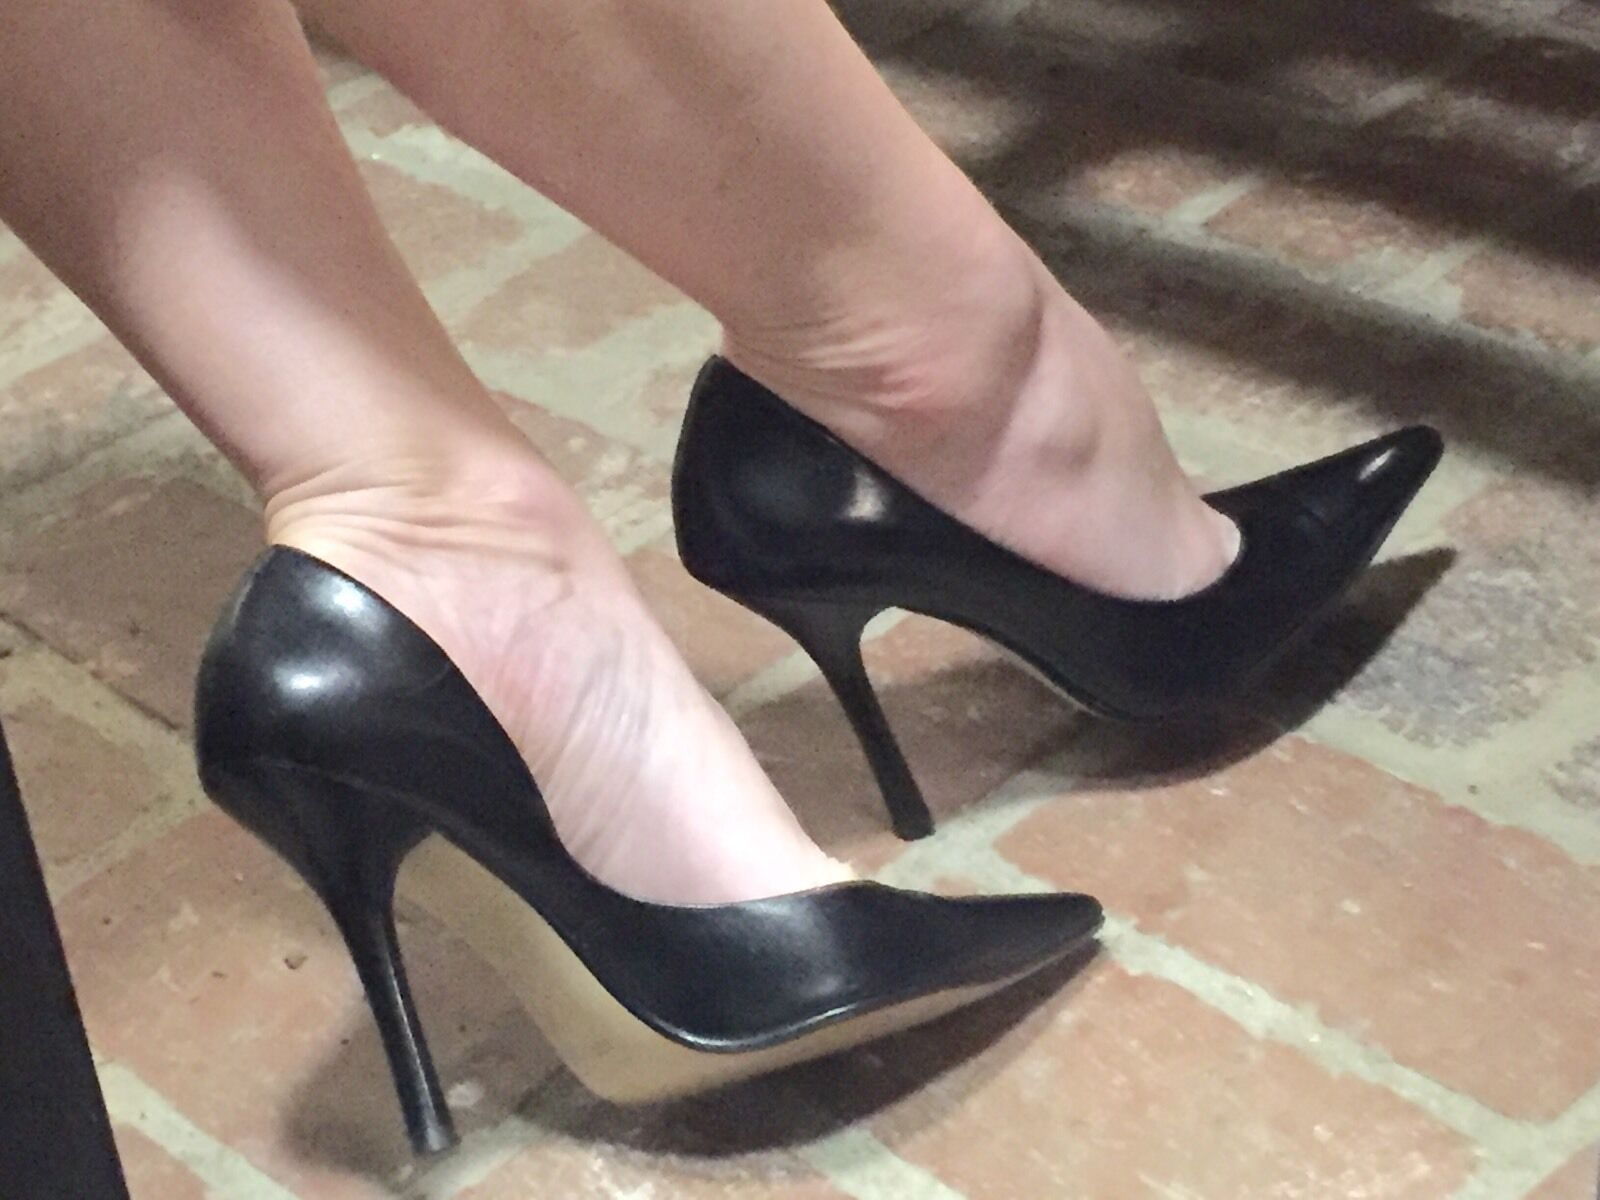 BLacK BLacK BLacK LeATheR EUC Sz 6.5 Pointy Toe CARRIE Stilettos High Heels PUMP GuESS Spike cc6d45